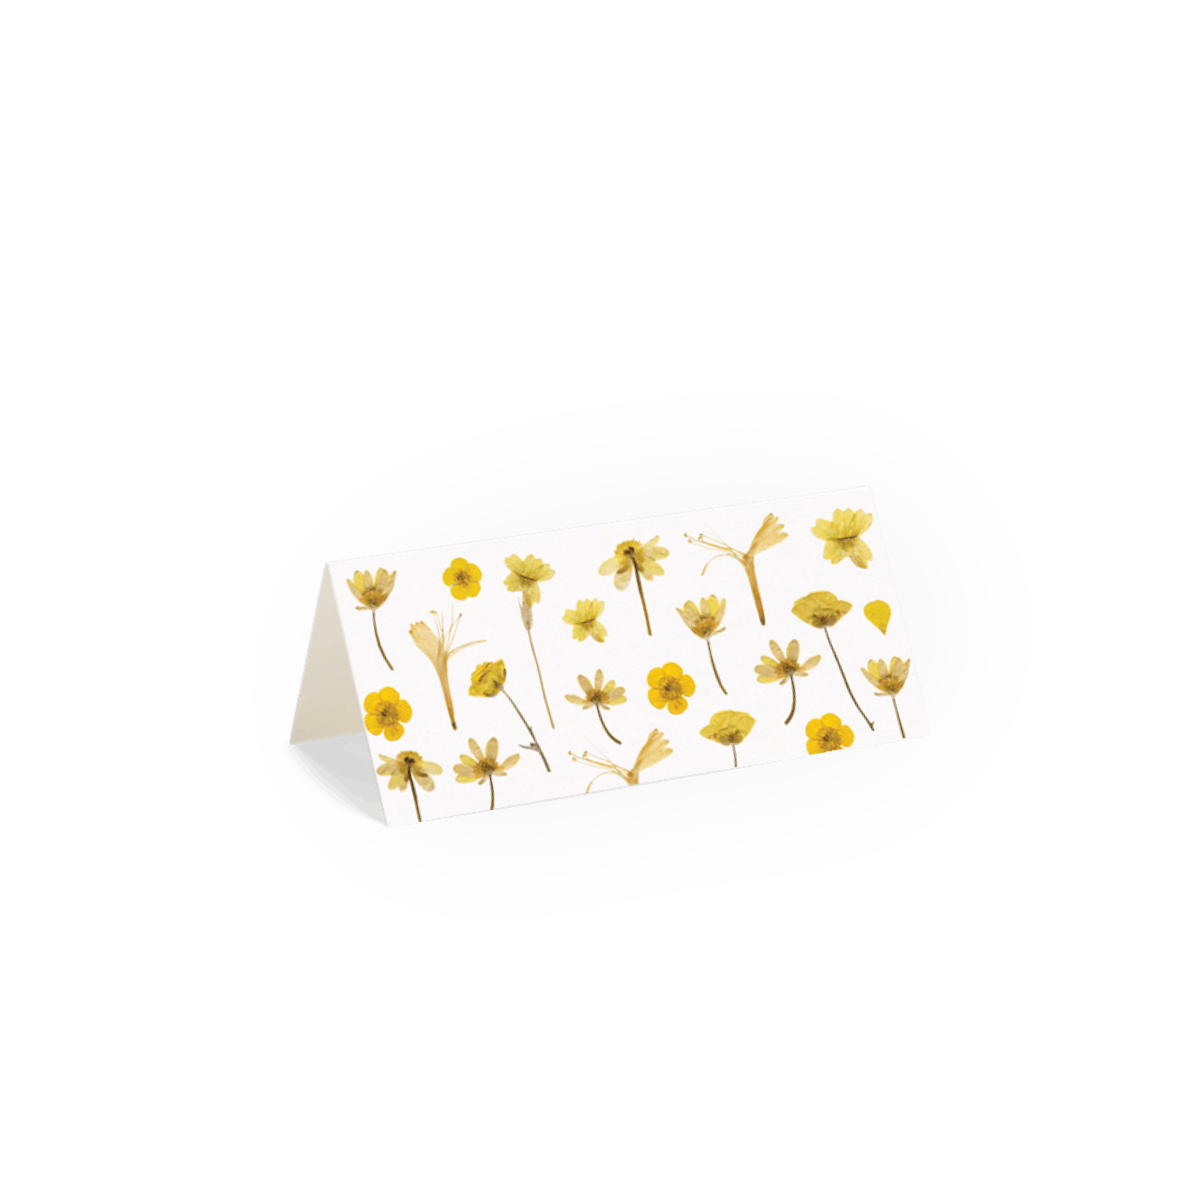 Https%3a%2f%2fwww.papier.com%2fproduct image%2f82213%2f15%2fgolden meadow 19858 ruckseite 1562073416.png?ixlib=rb 1.1